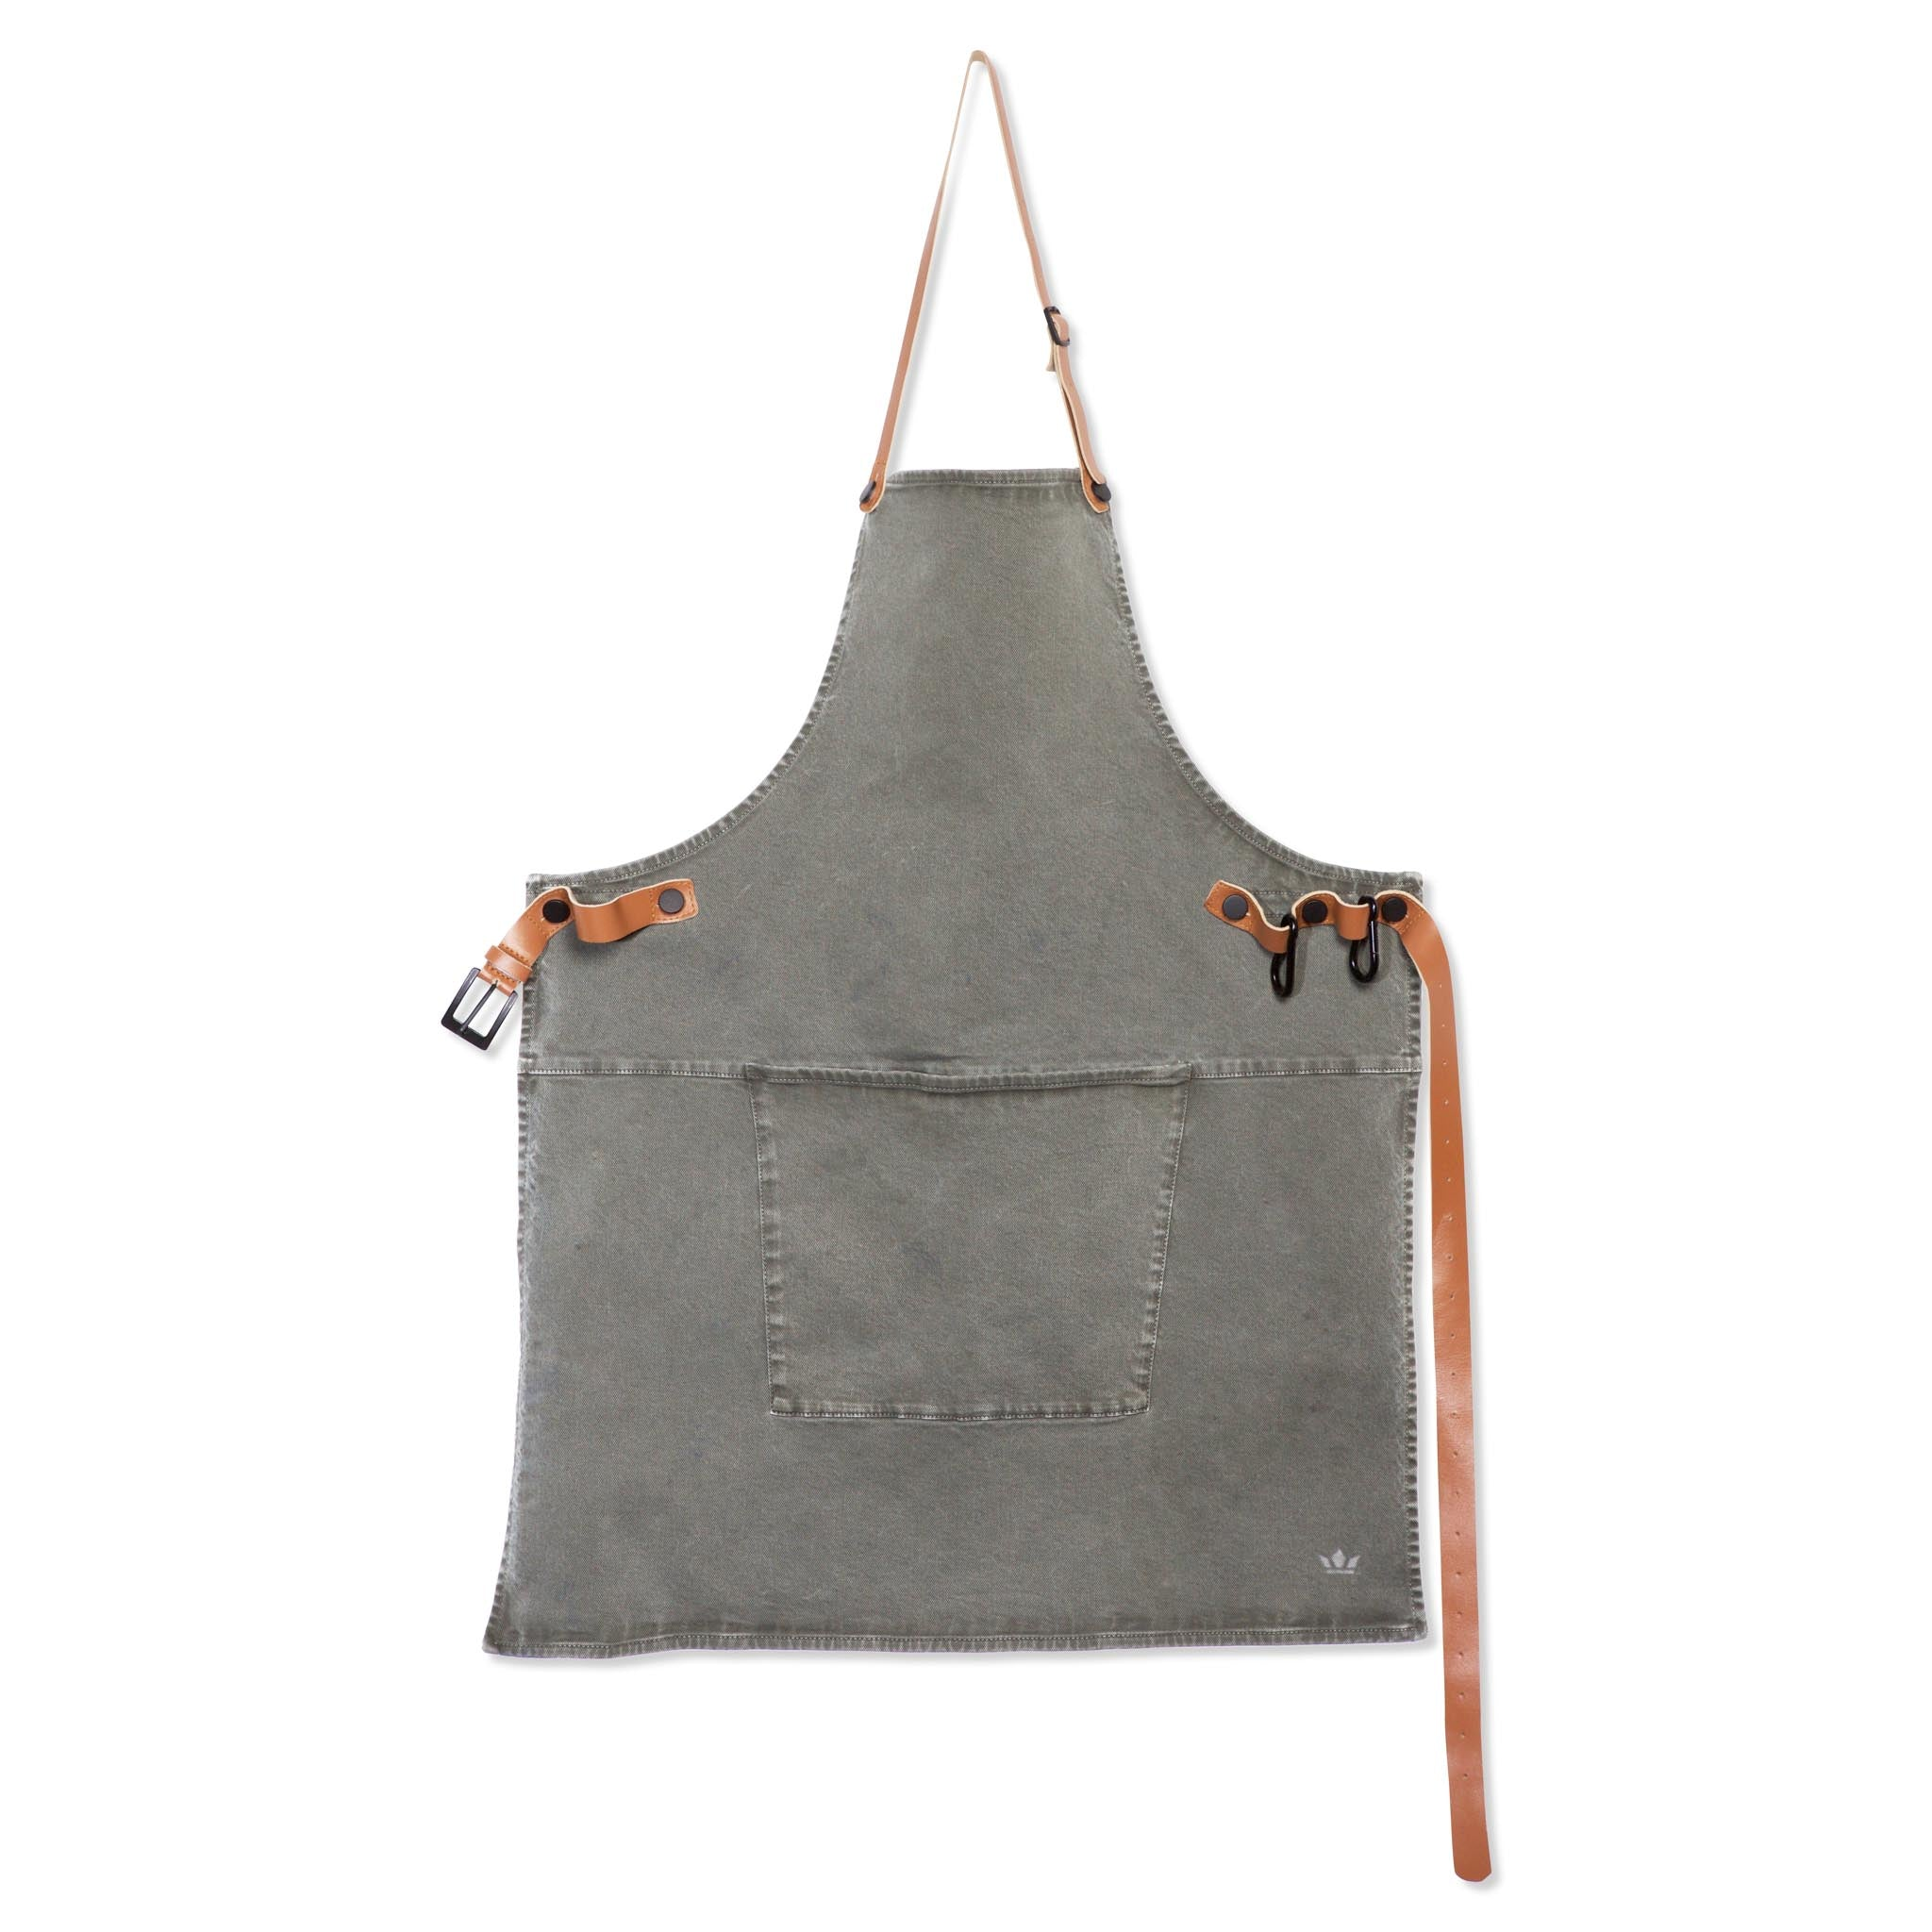 Dutchdeluxes Canvas BBQ Apron in Grey-Green